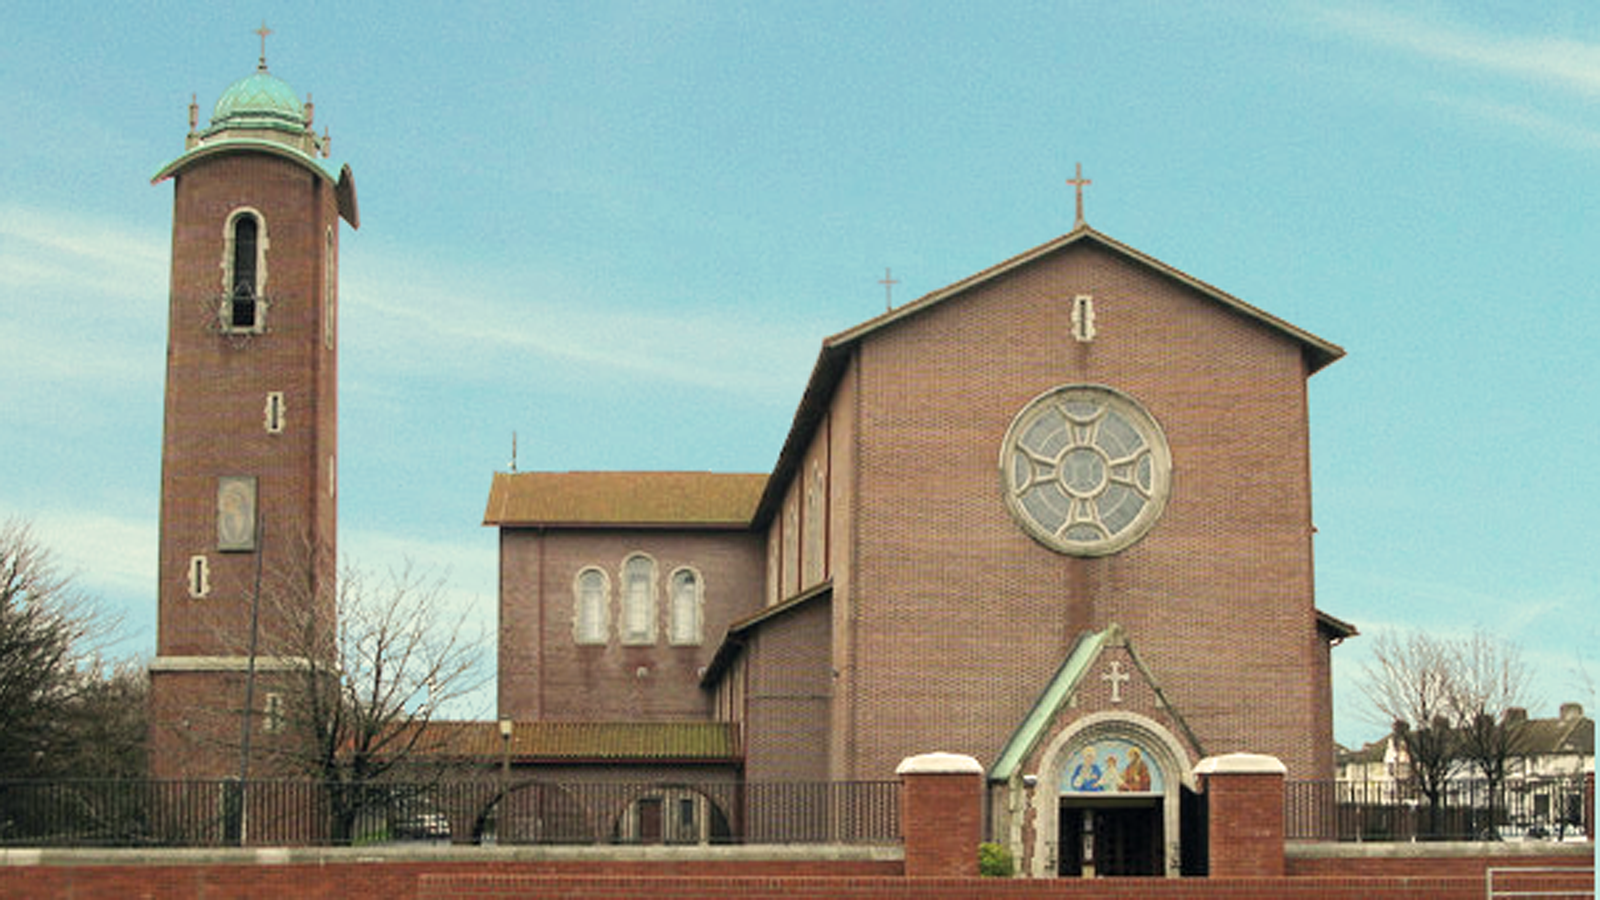 The Church of the Holy Child, Whitehall - The Thatch Road, Whitehall